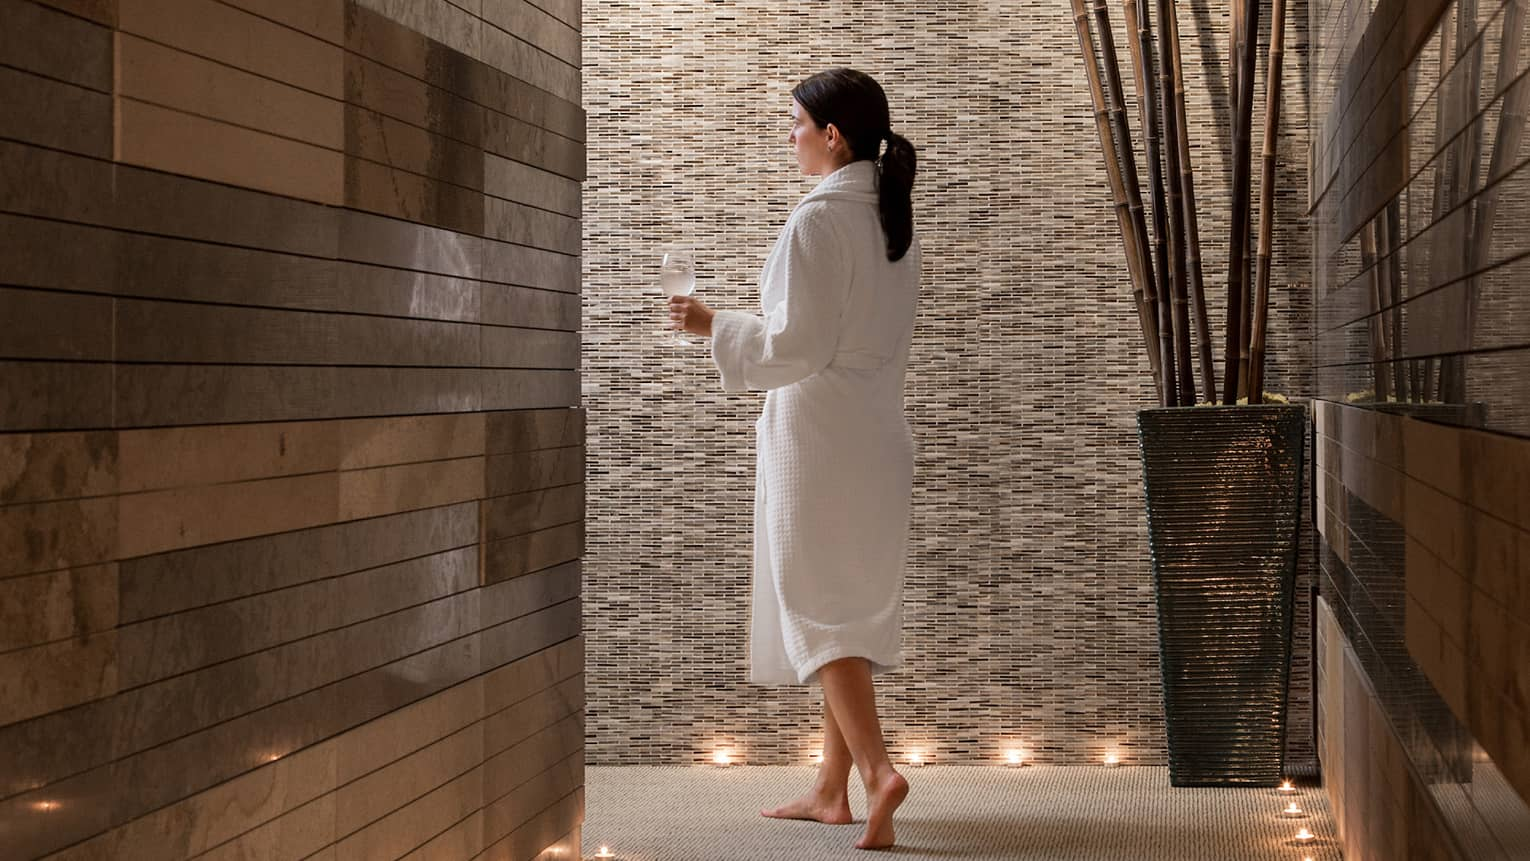 Woman in bathrobe holding wine glass with water walks through spa